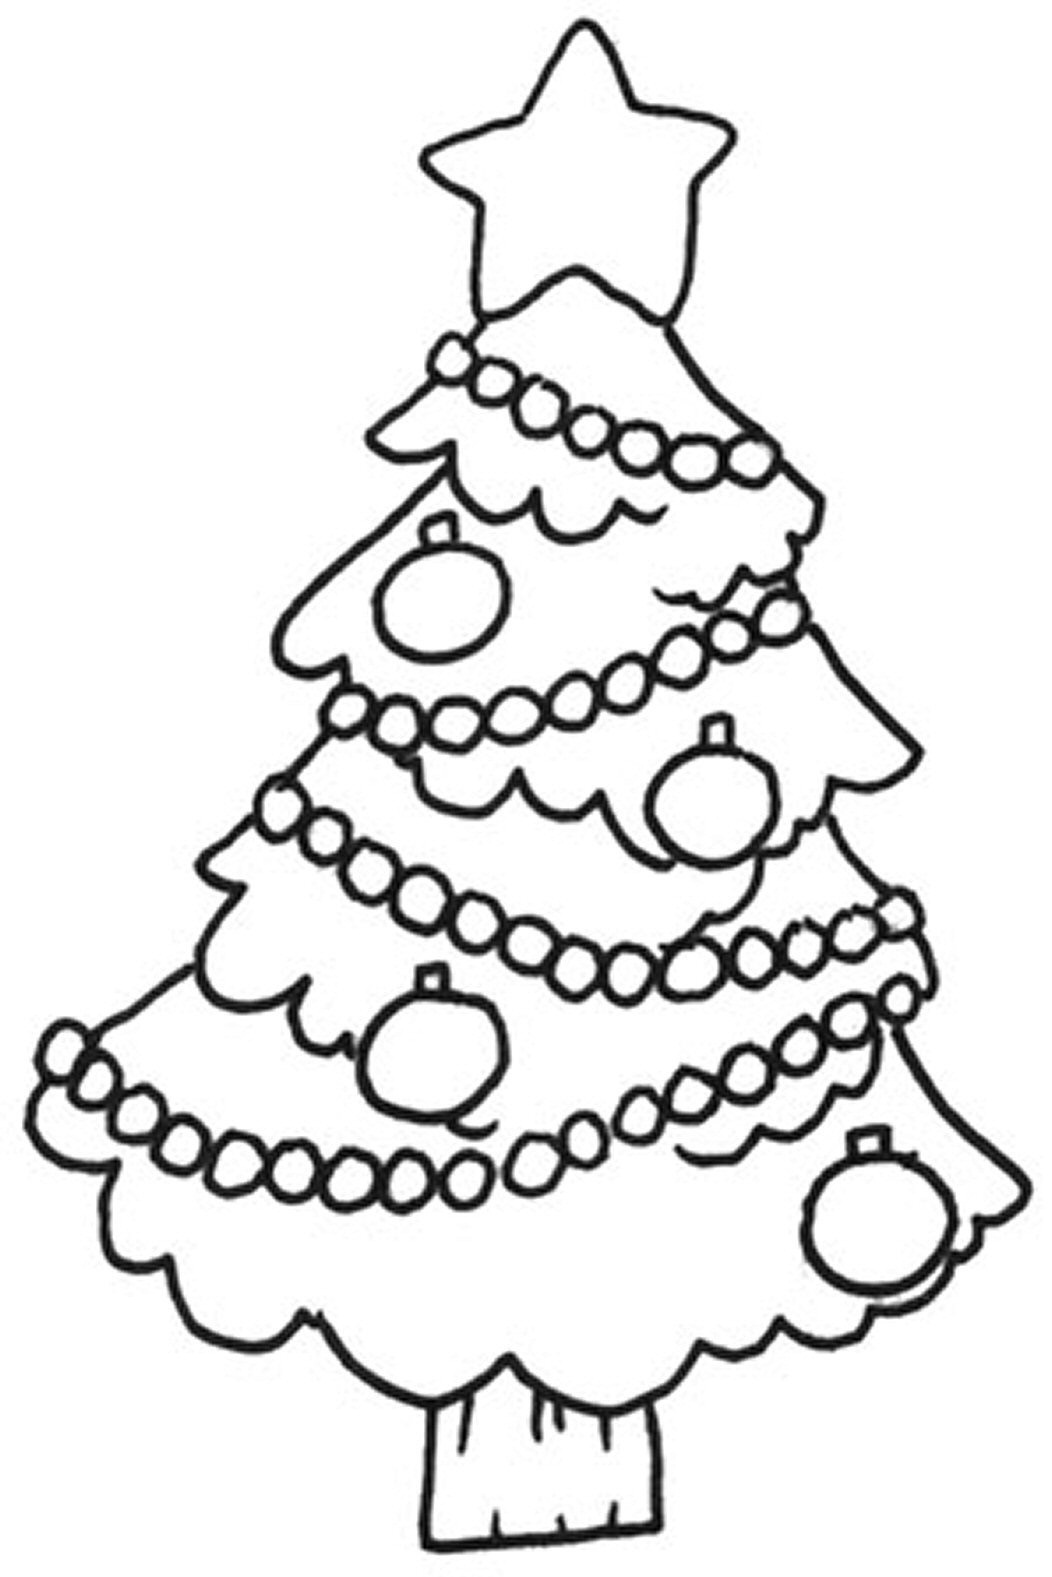 Uncategorized Christmas Trees Coloring Pages free printable christmas tree coloring pages for kids pages